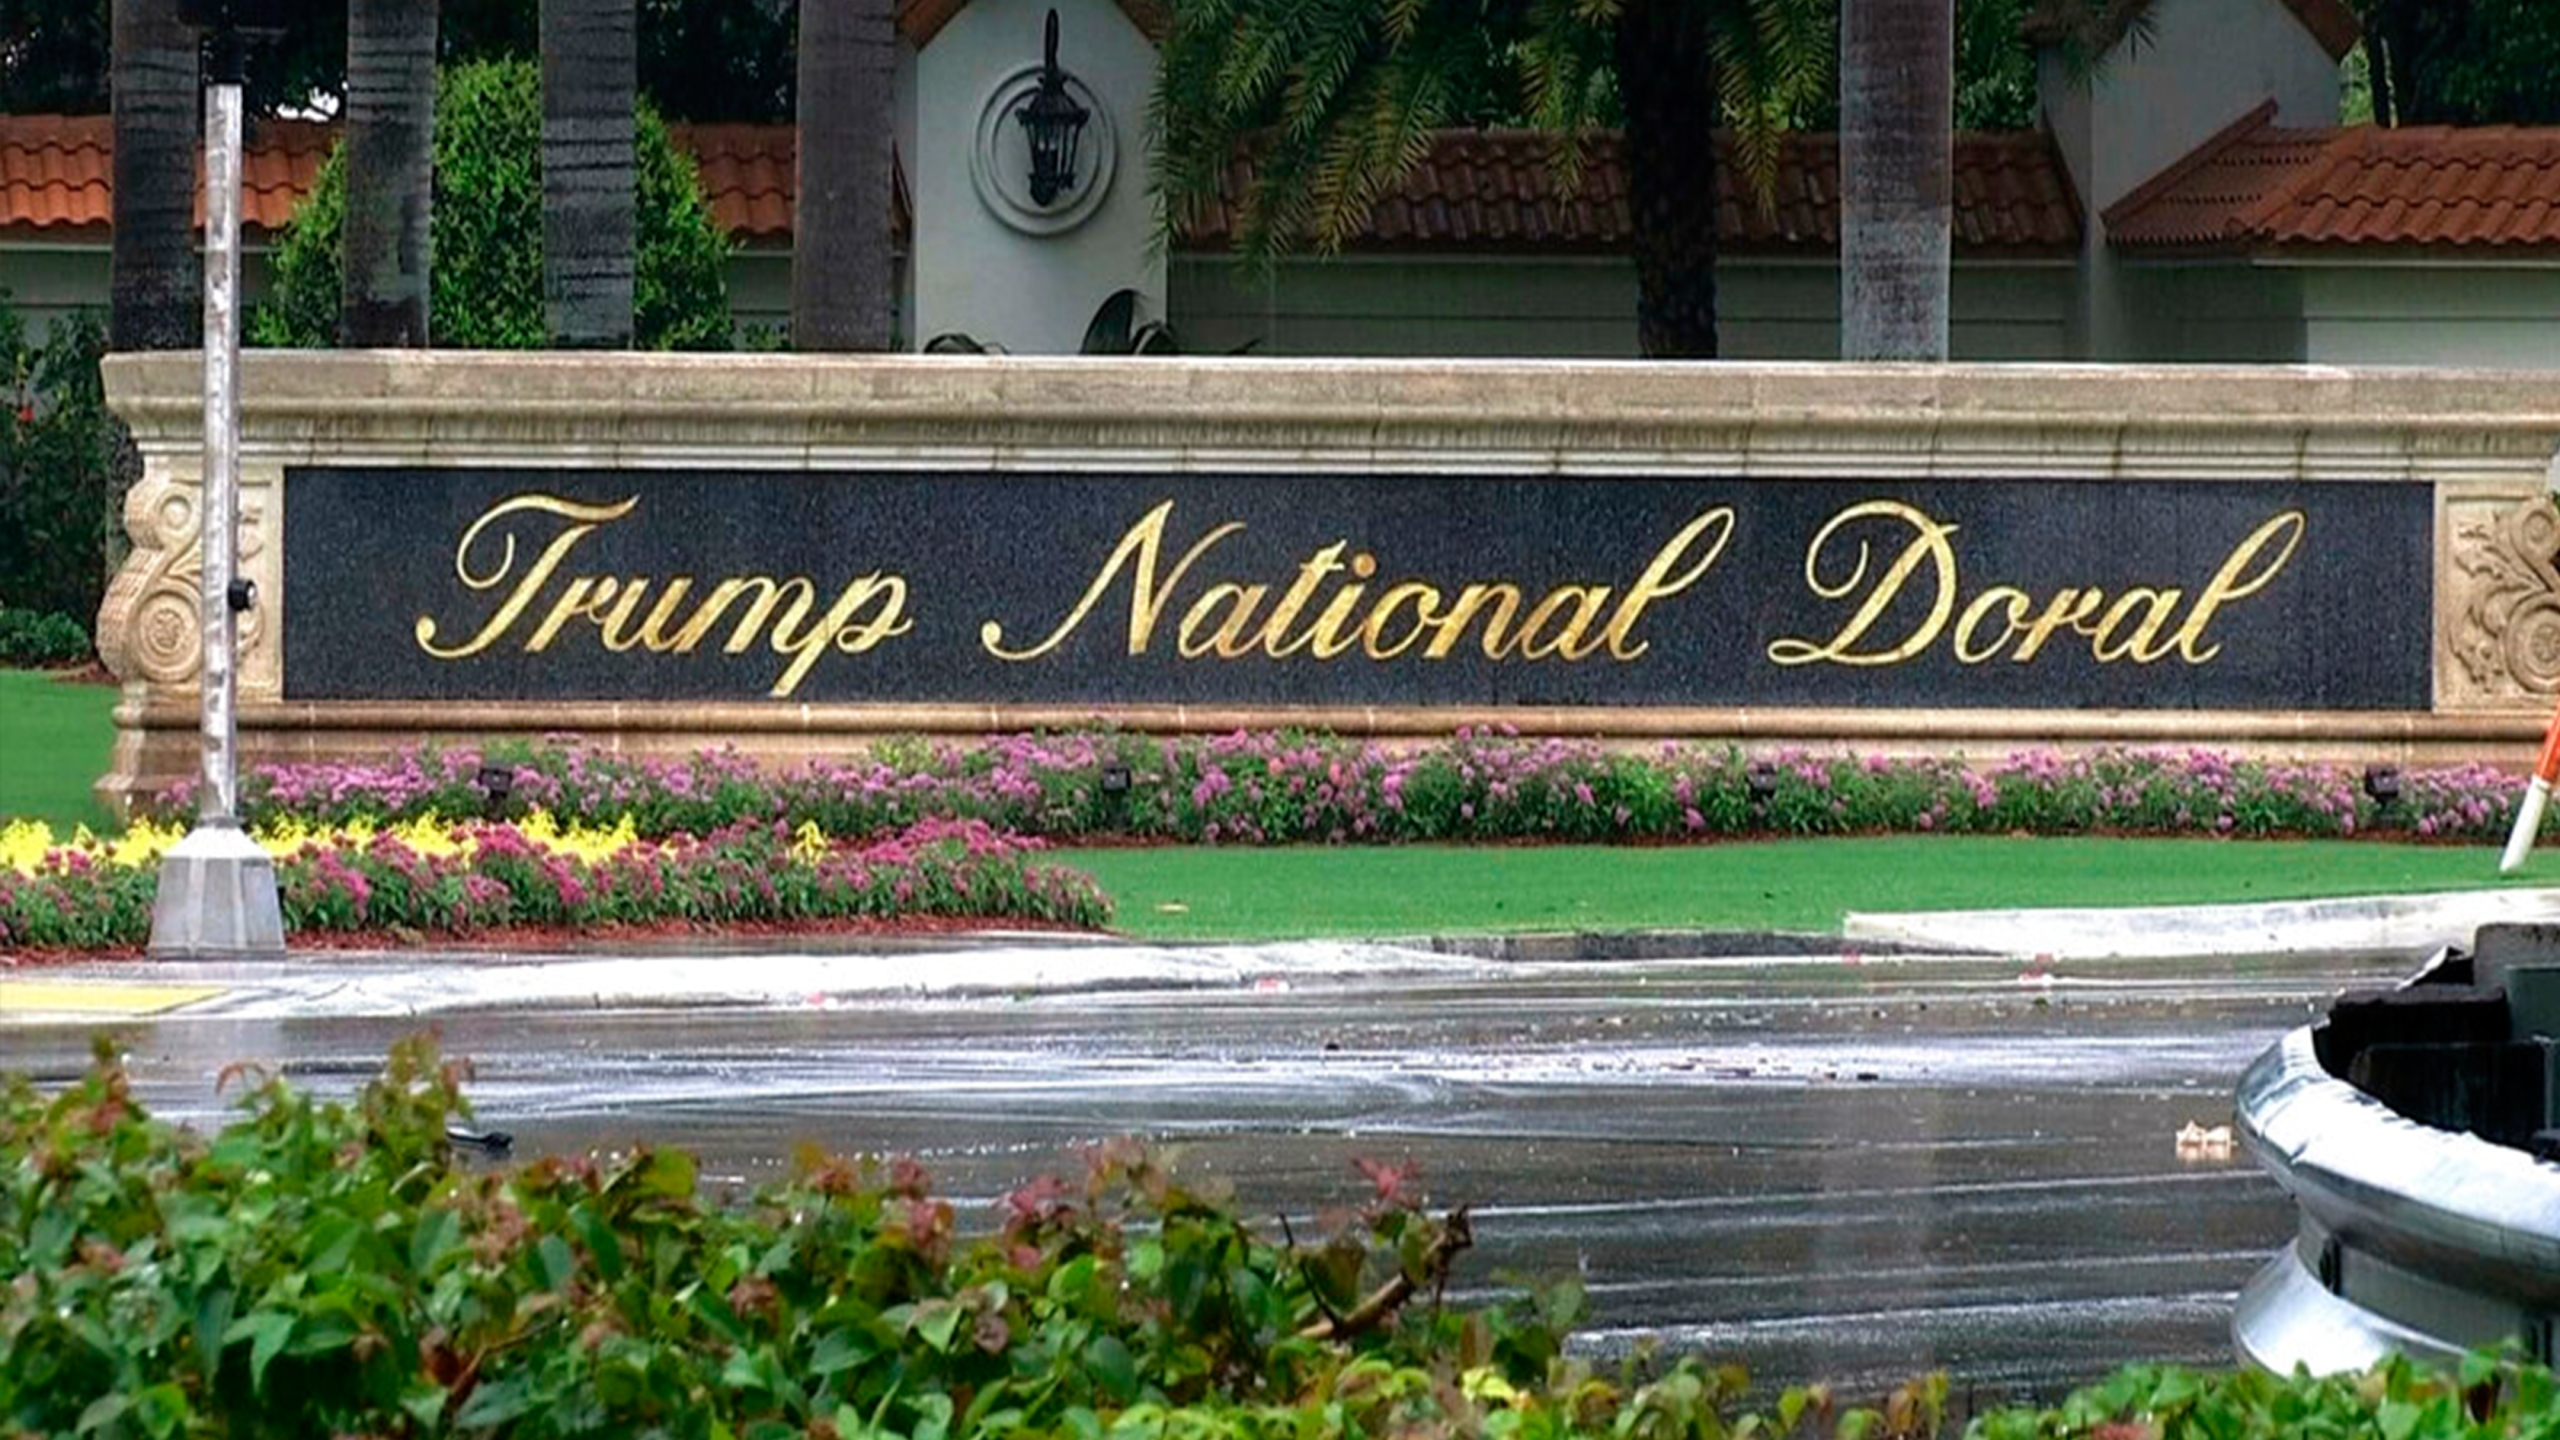 Trump National Doral